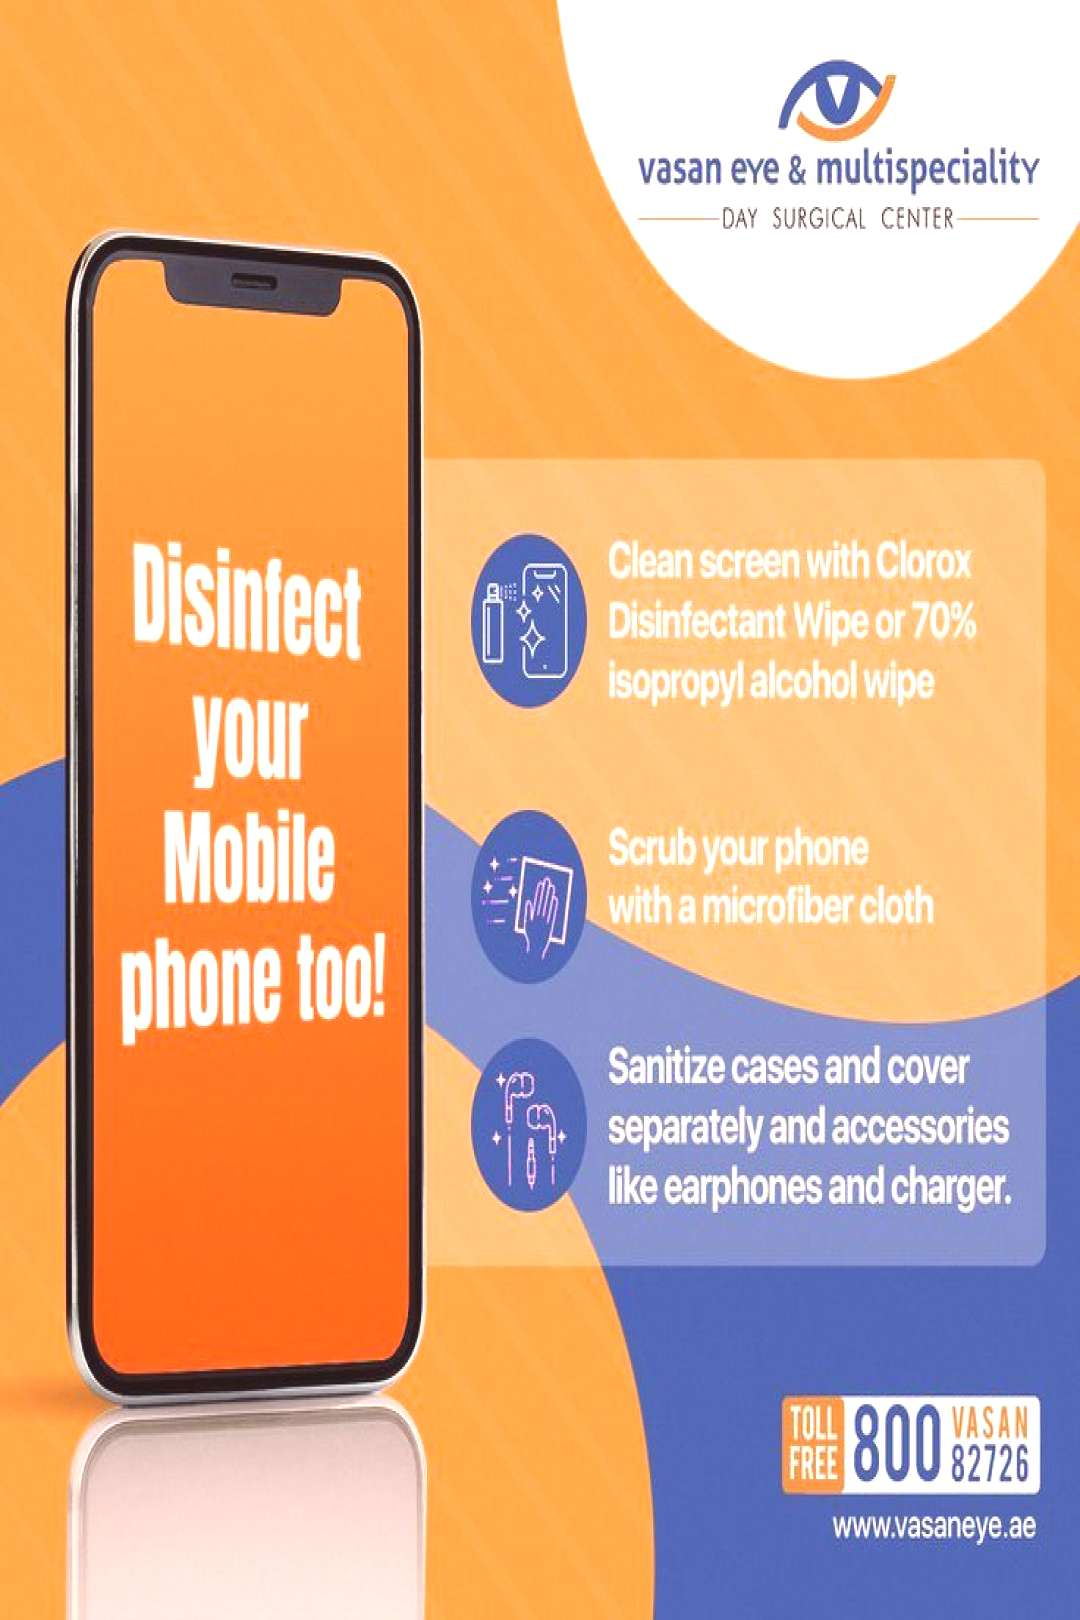 Your phone's hygiene is important as your hand hygiene. Keep it clean.